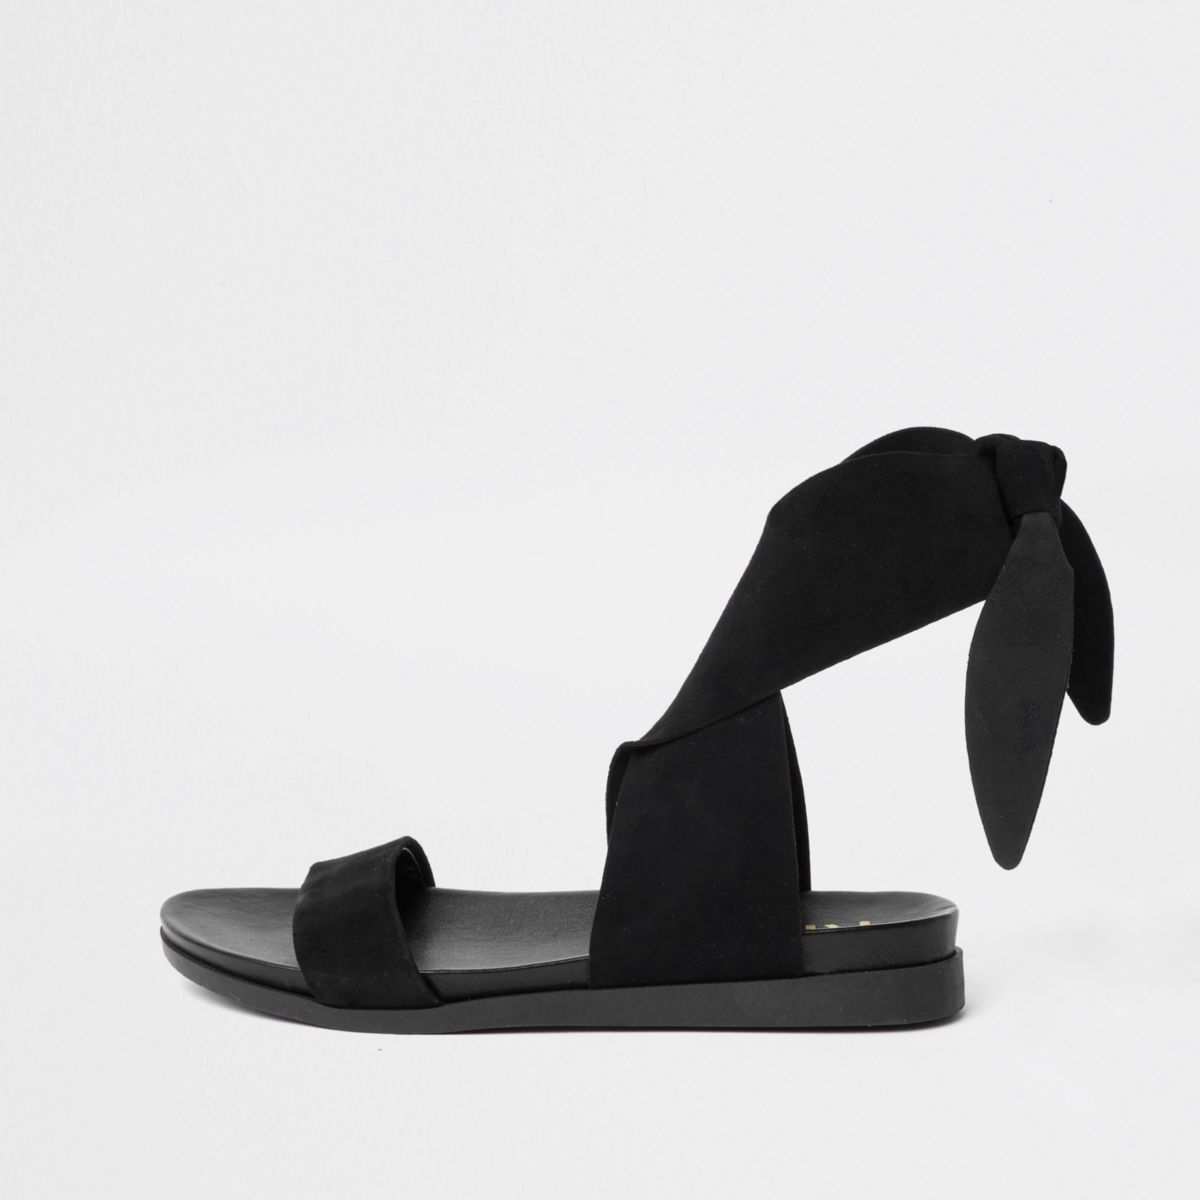 Black suede tie up sandals